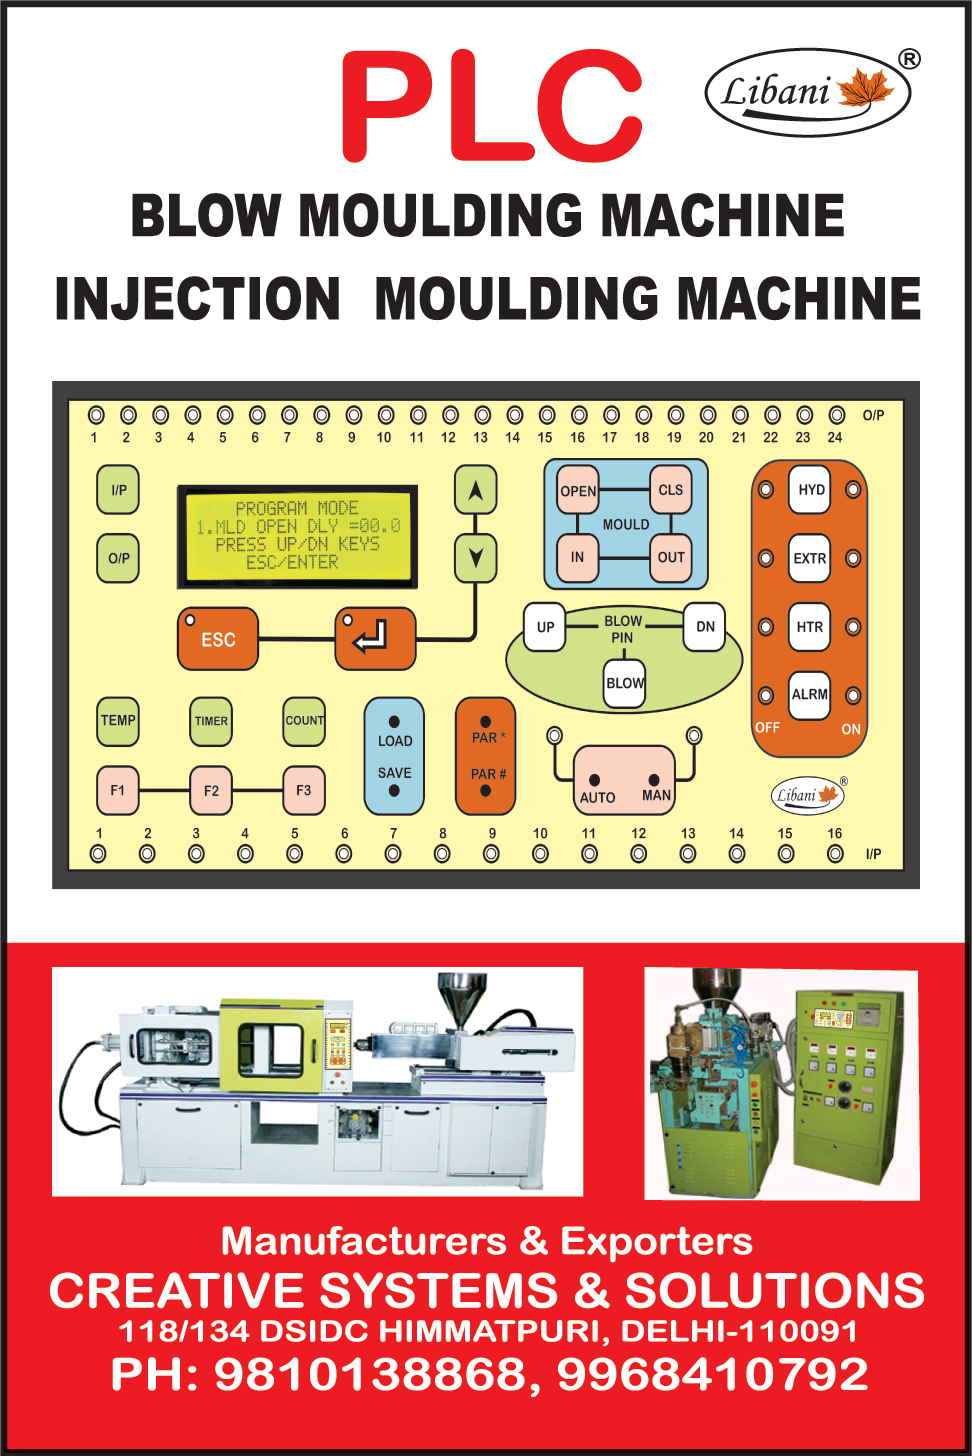 Blow Moulding Machines, Injection Moulding Machines